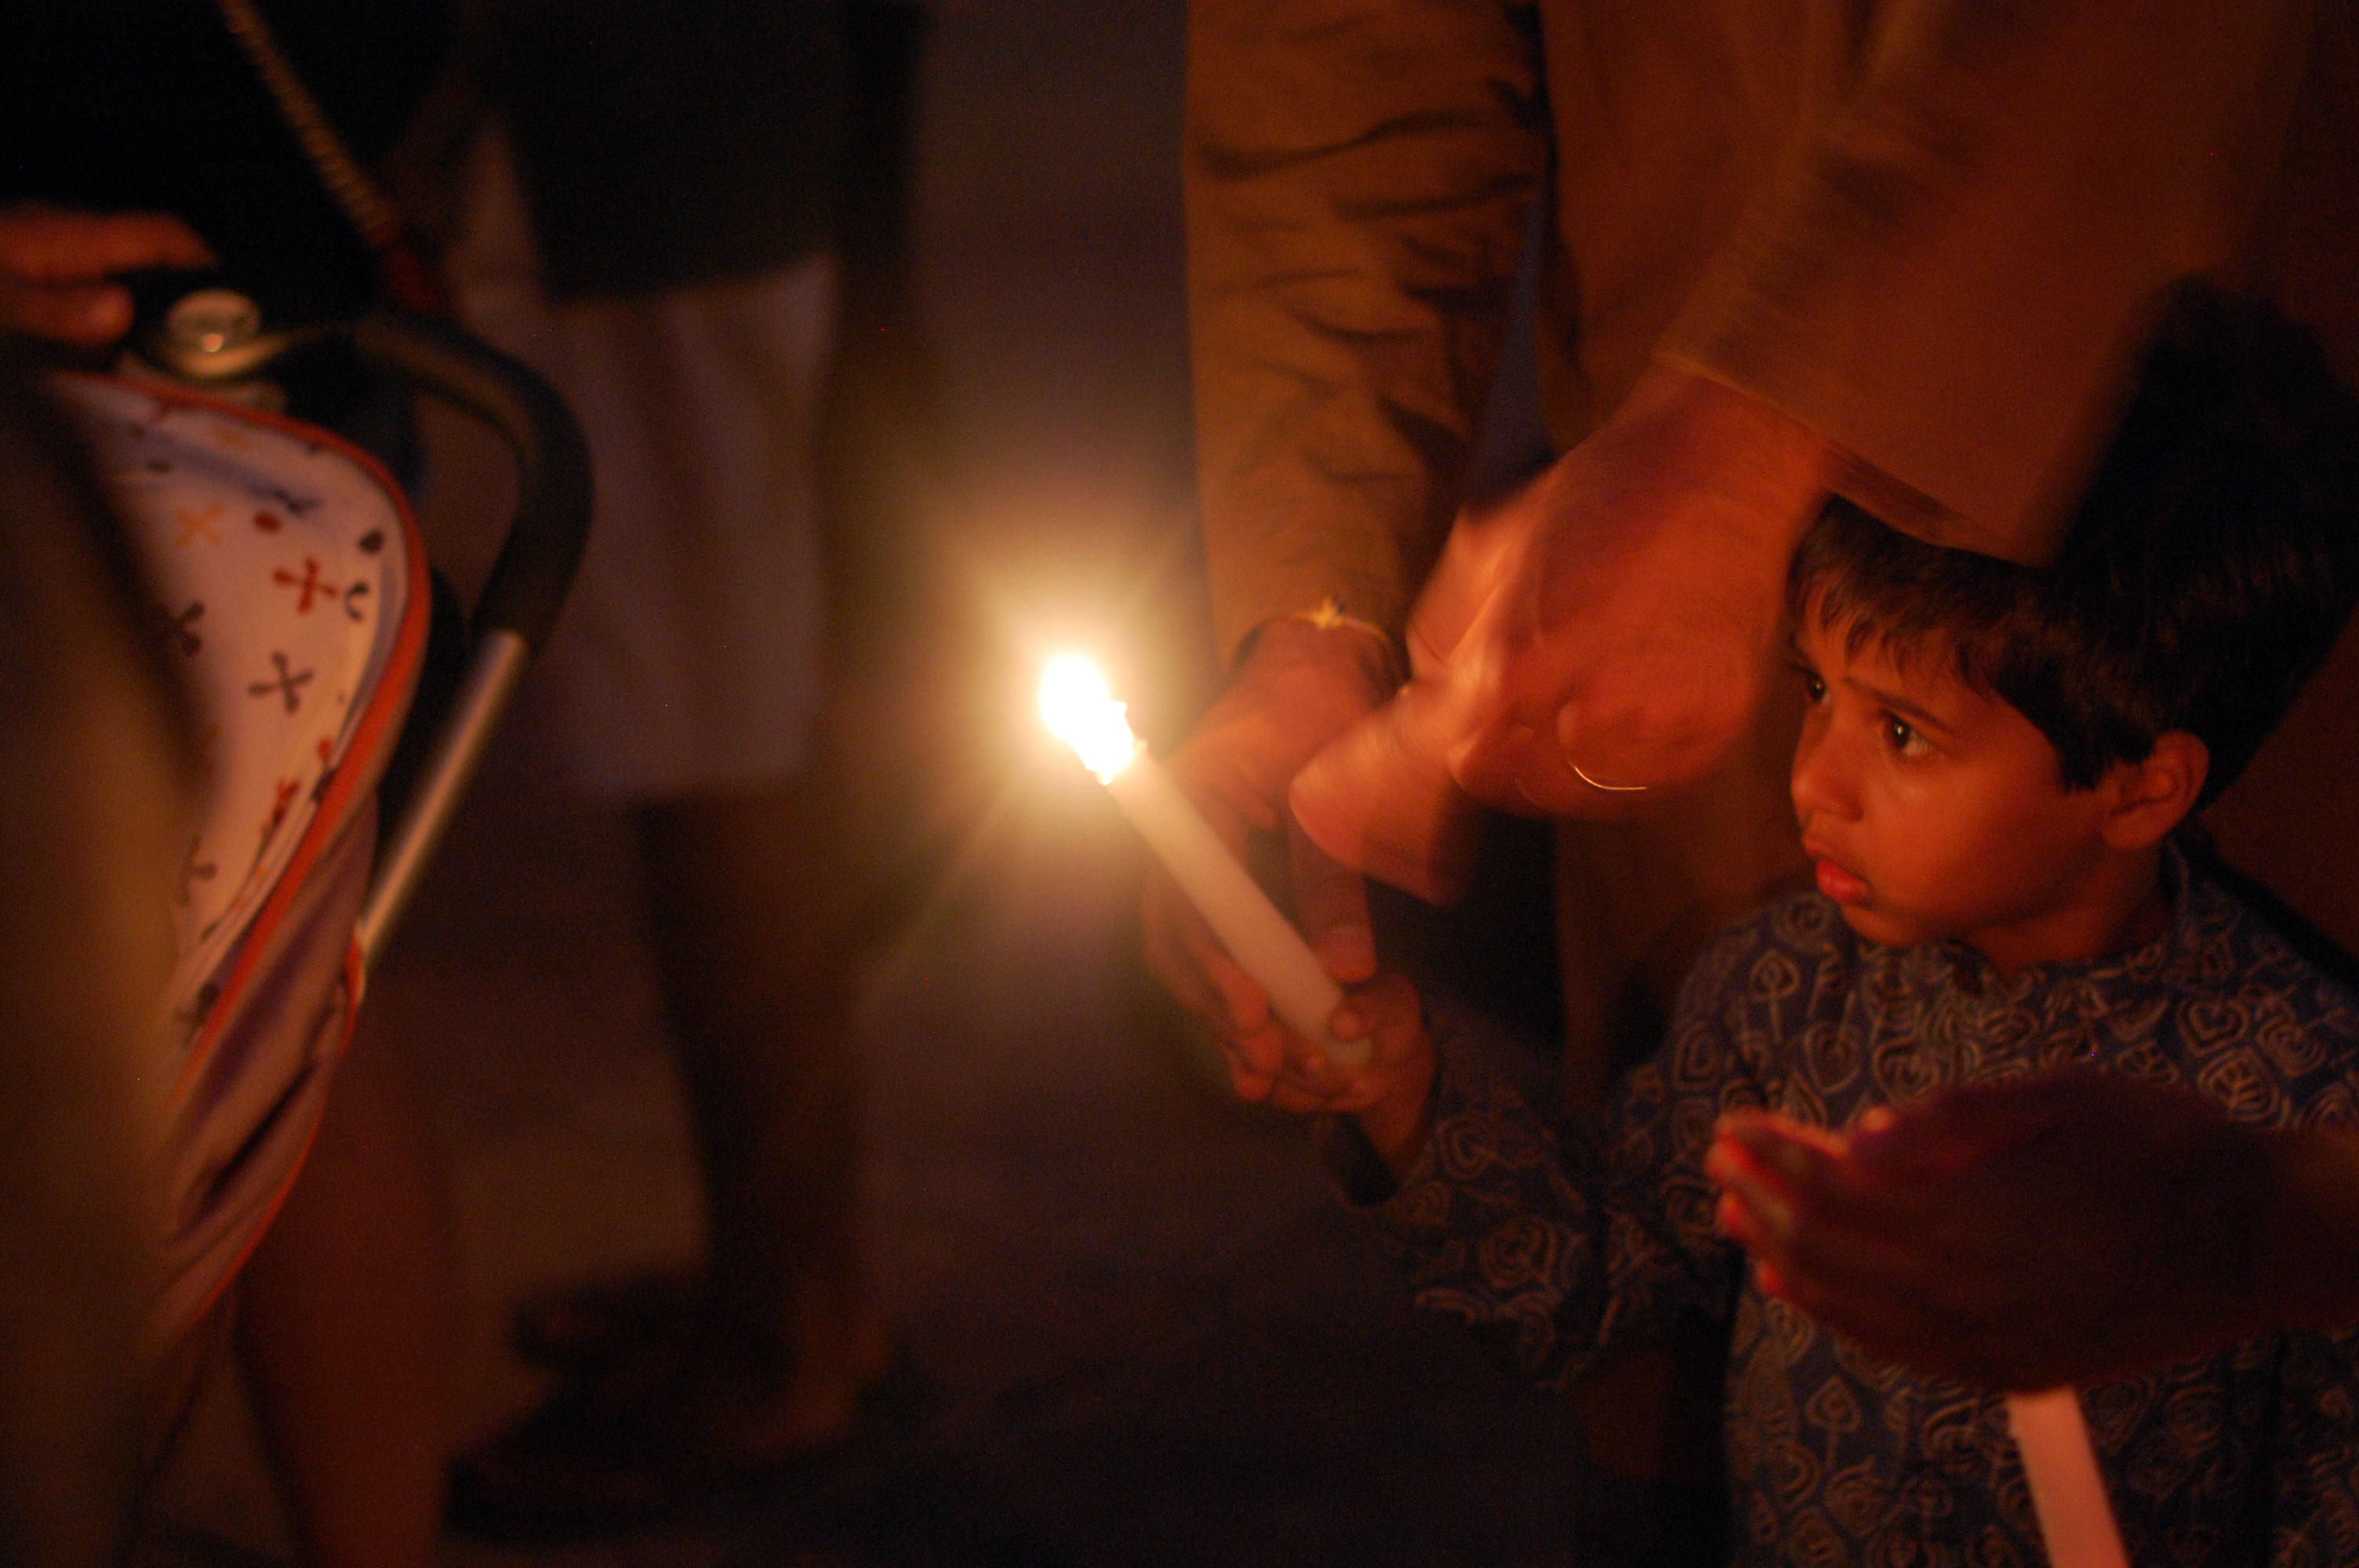 A father helps light his son's candle during the vigil